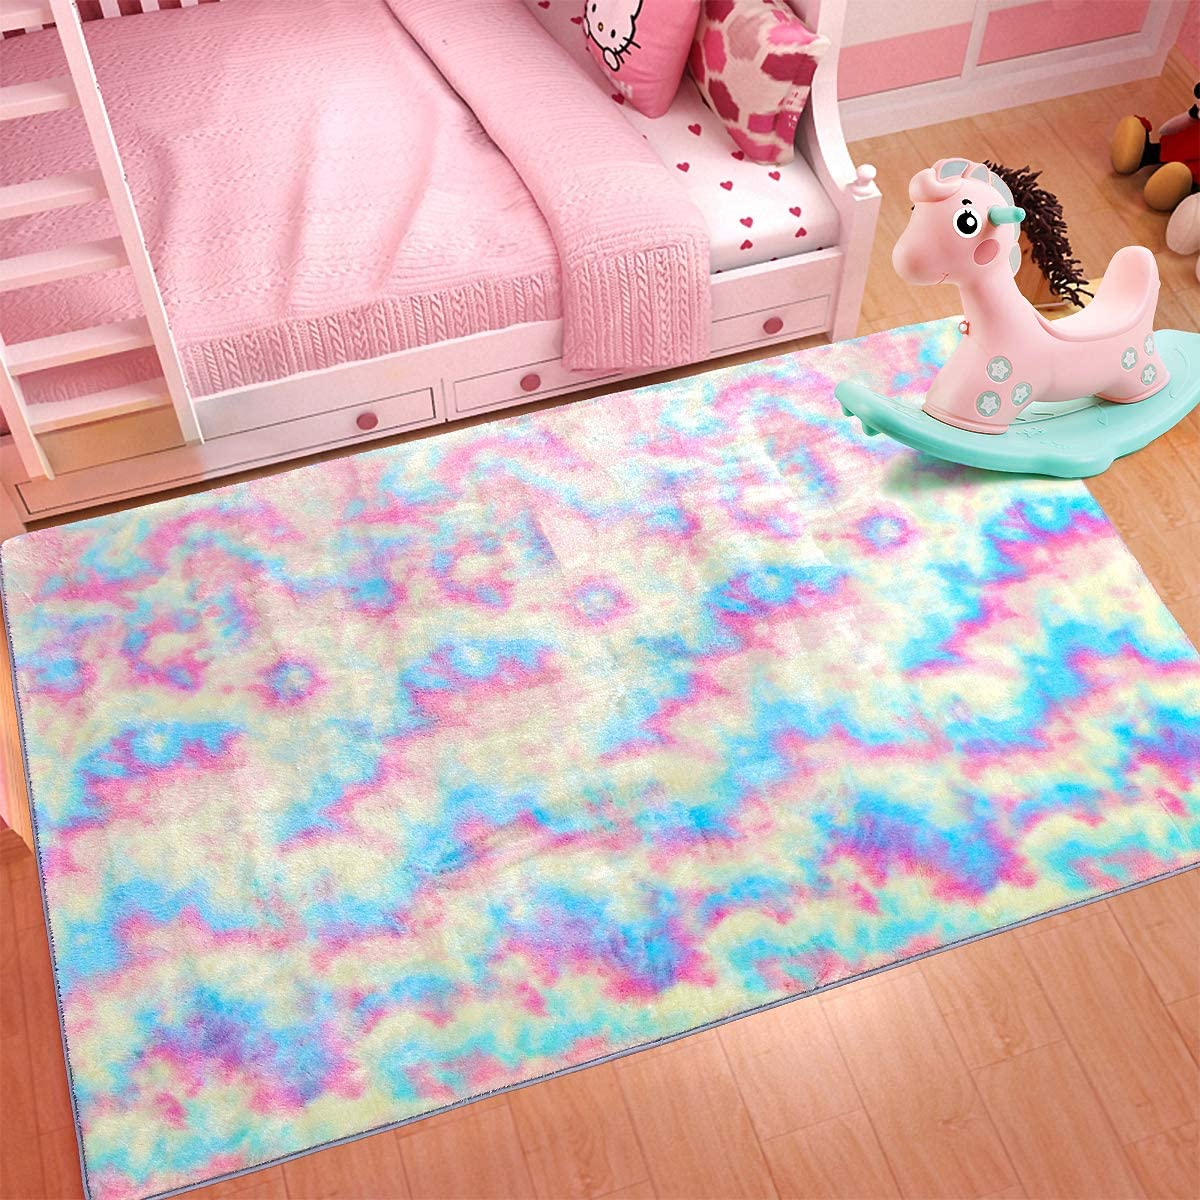 Maxsoft Furry Kids Rainbow Rugs, Colorful Area Rug for Girls Bedroom, Nursery, Play Room, Fuzzy Carpet for Living Room, Home Decor (3x5 Feet)